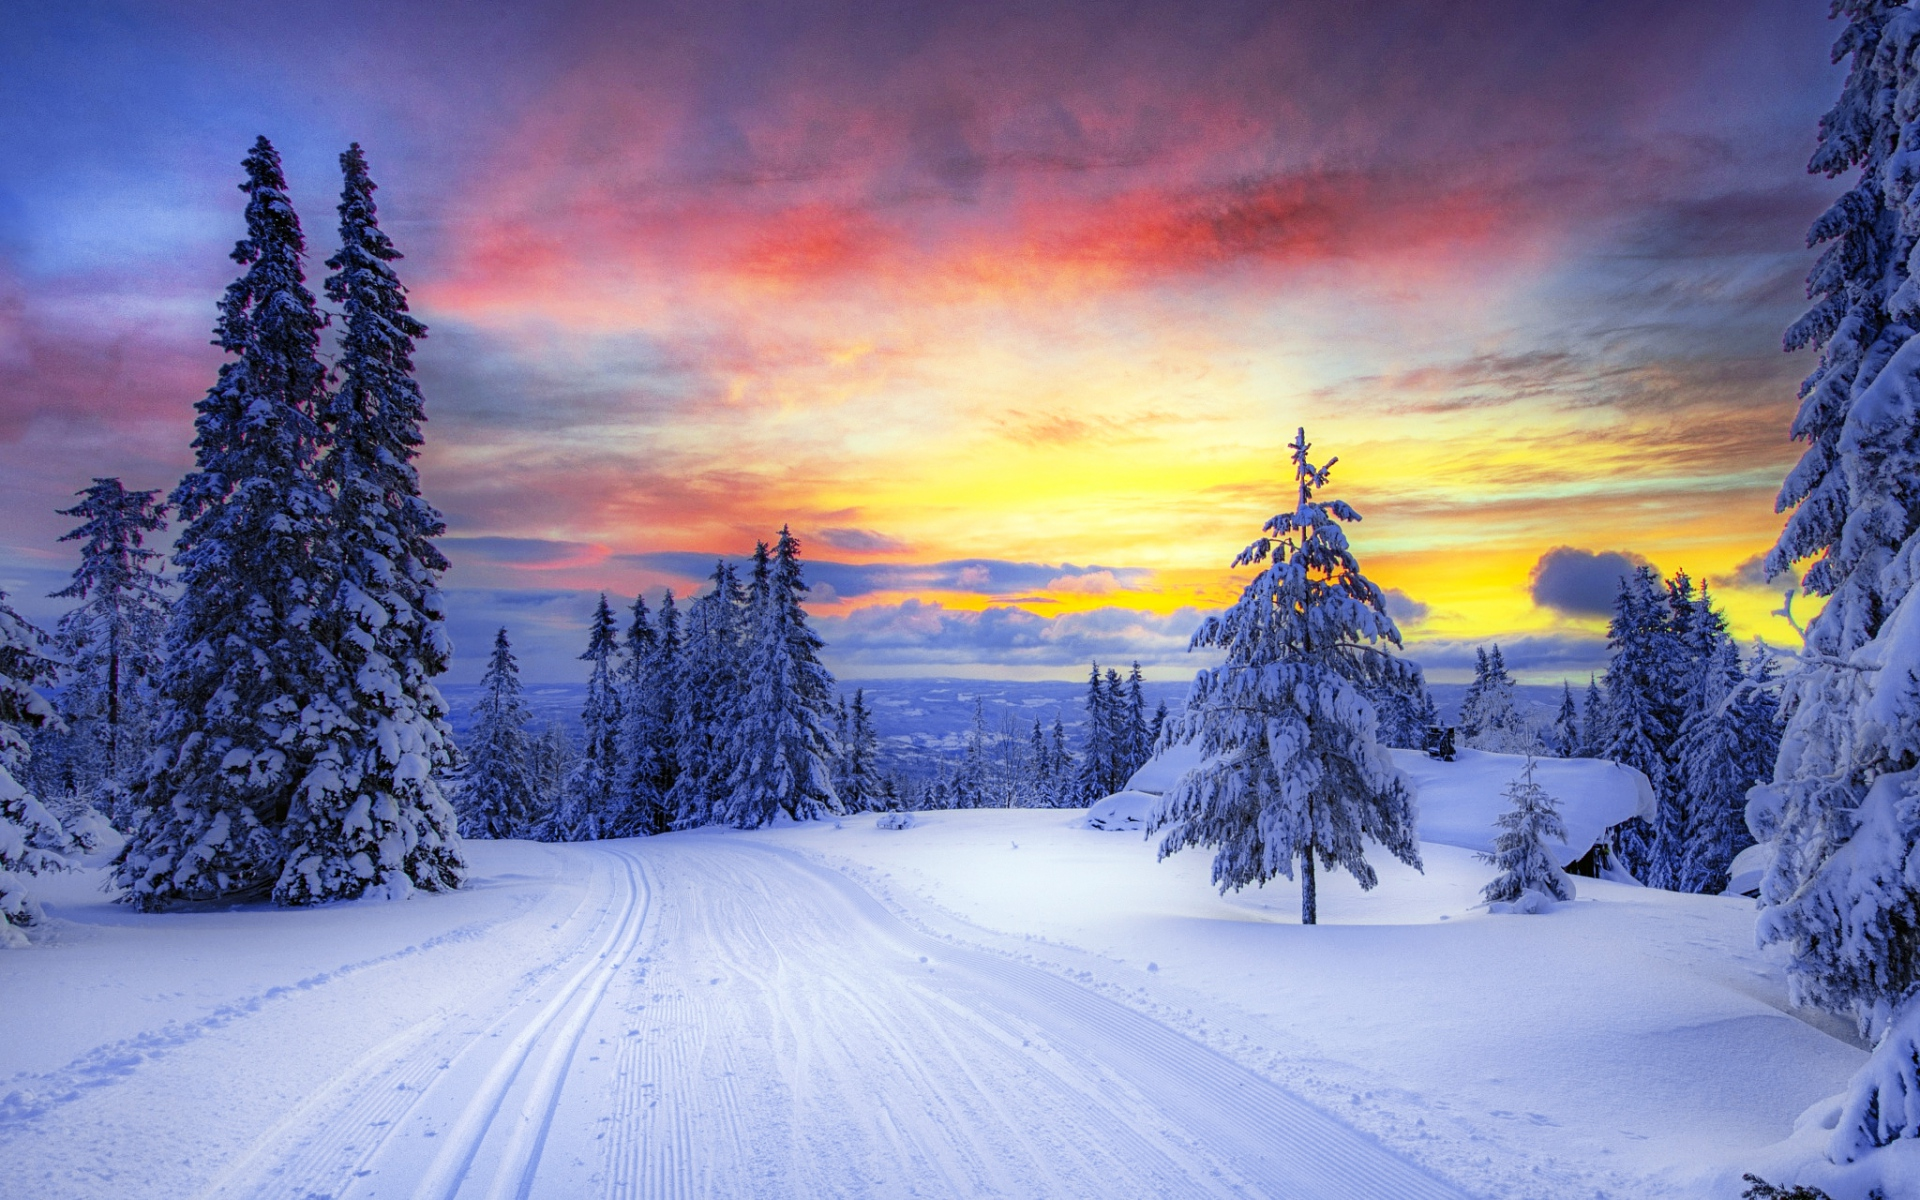 Winter Trees Snowy Road Sunset wallpapers   Winter Trees ...